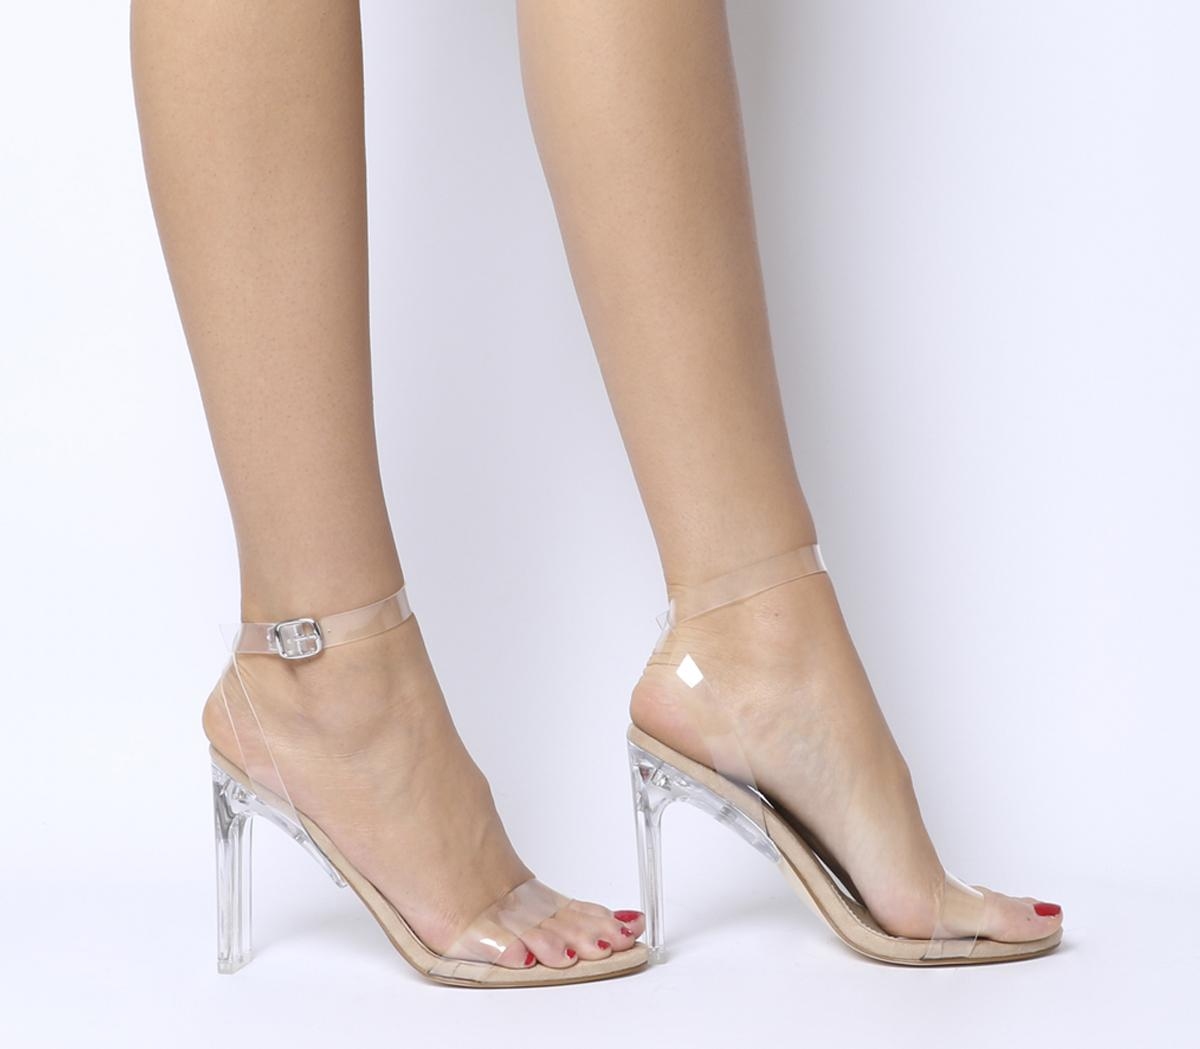 Ego Invisible Clear Heels Nude - High Heels